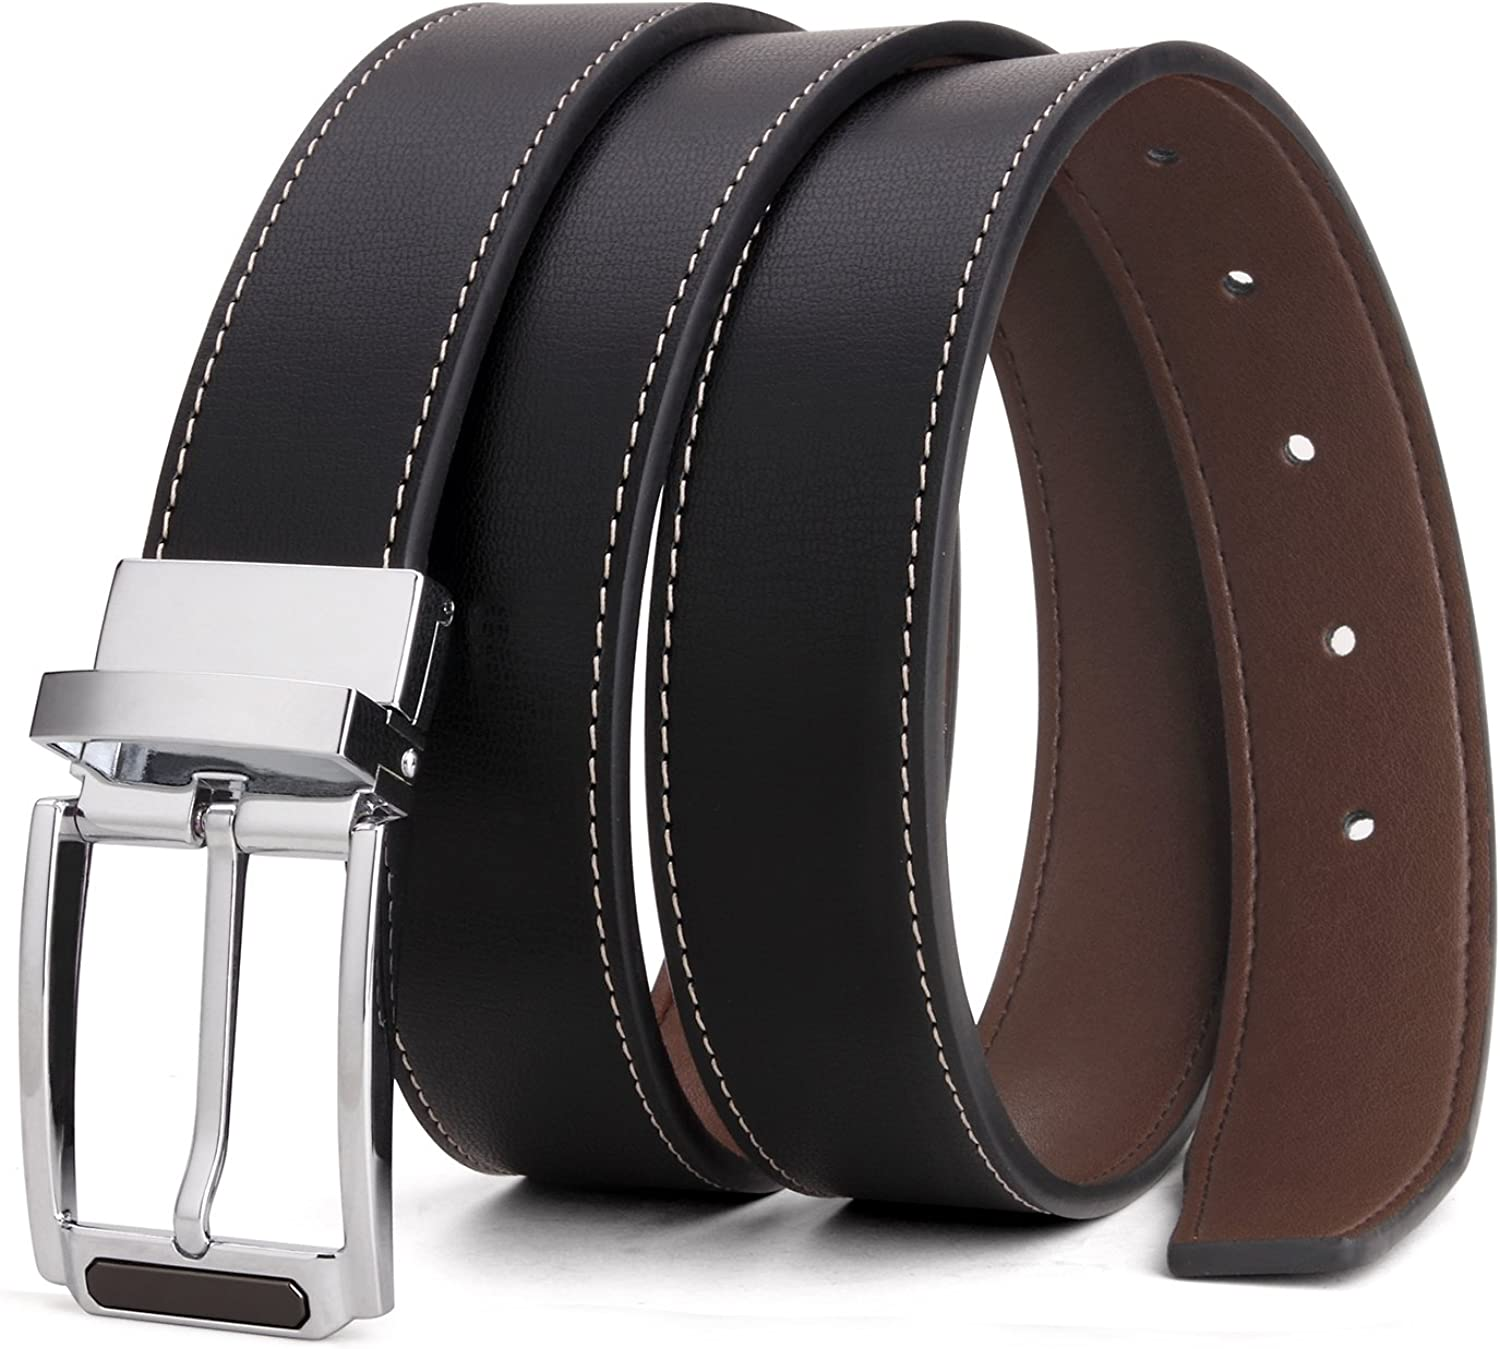 Tonly Monders Mens Reversible Belt Dress Leather Belts For Men Rotated Buckle